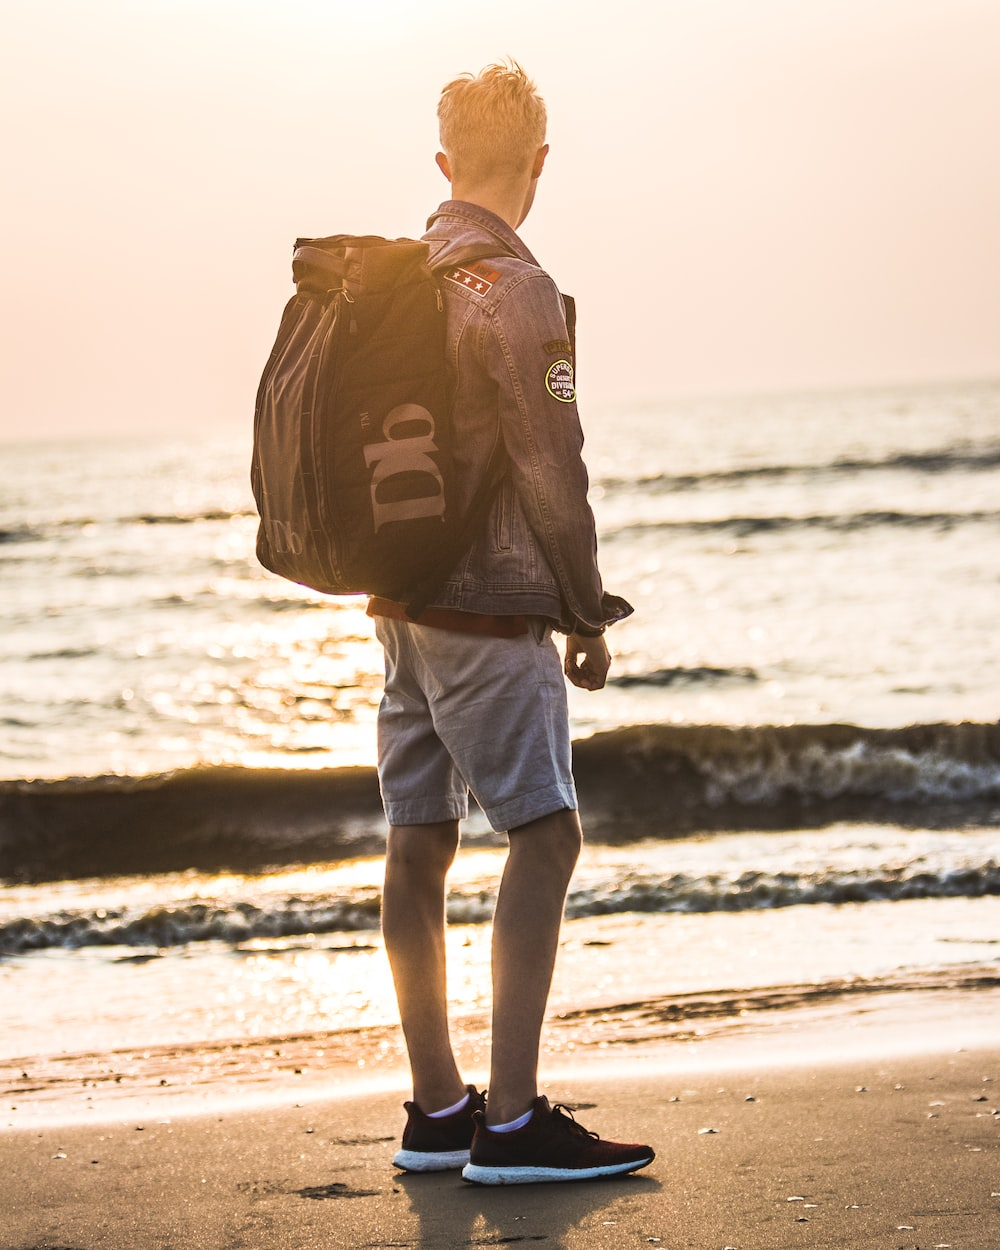 man carrying backpack standing near shoreline